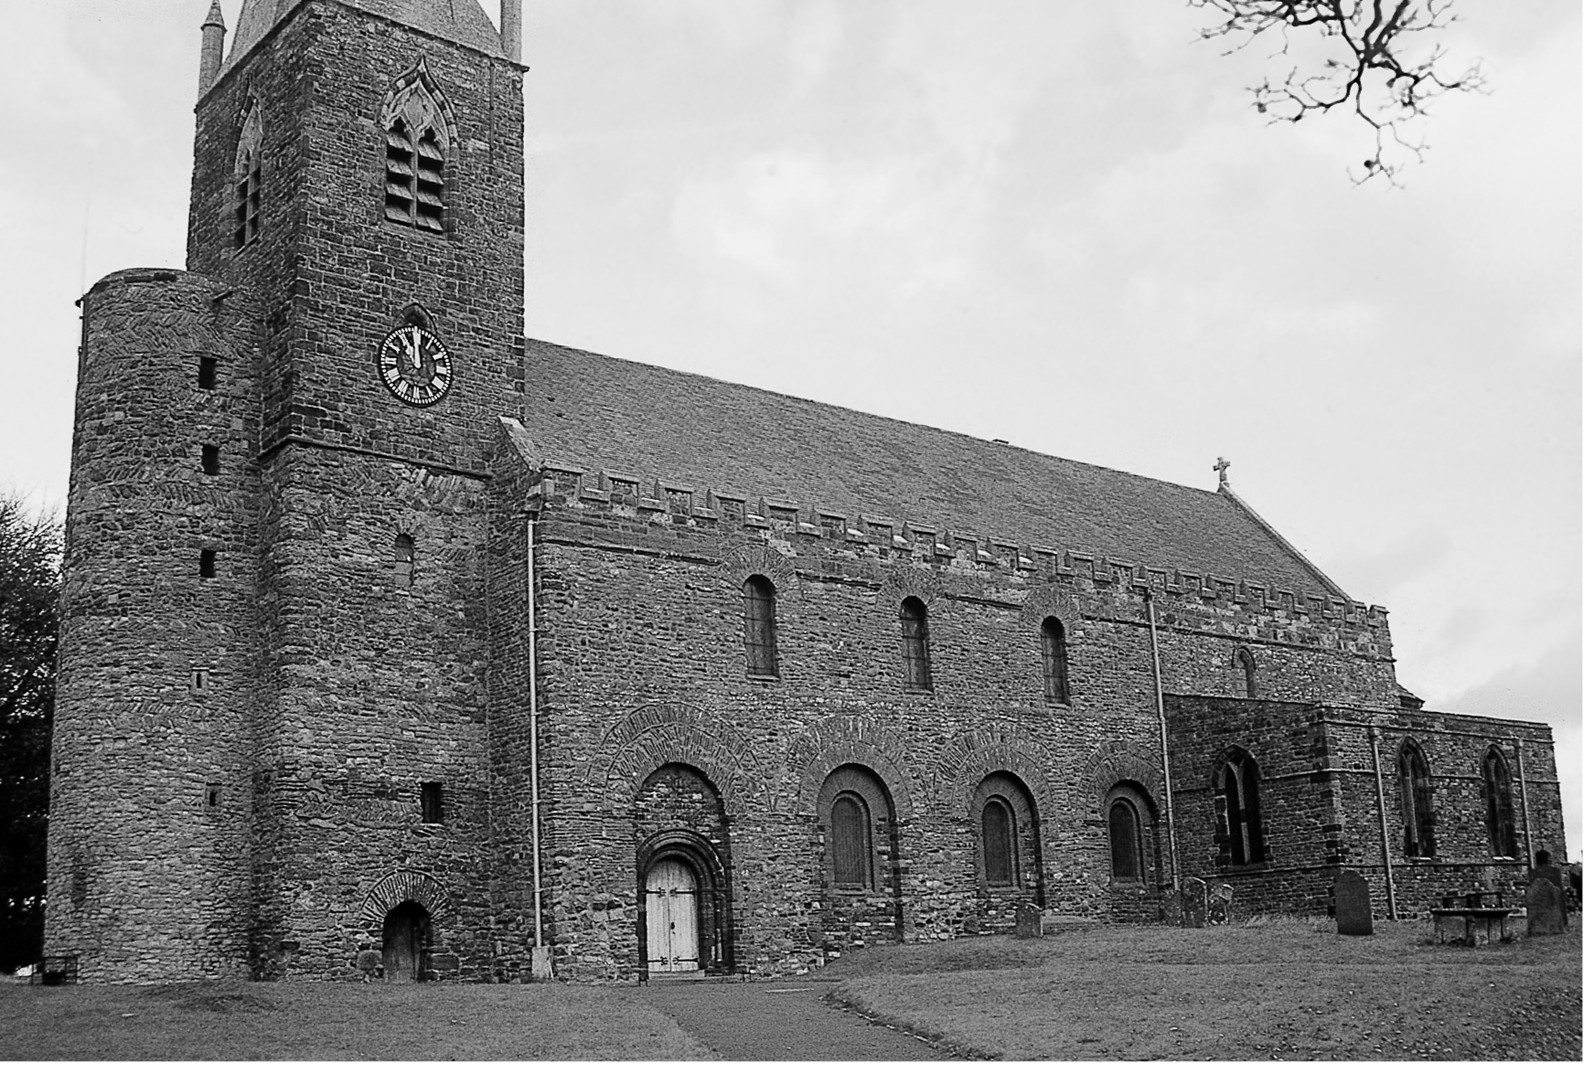 A black and white photograph of a church, constructed from  irregular stone blocks with small arched windows. There is a tower at the left hand end with a small clock on the side.